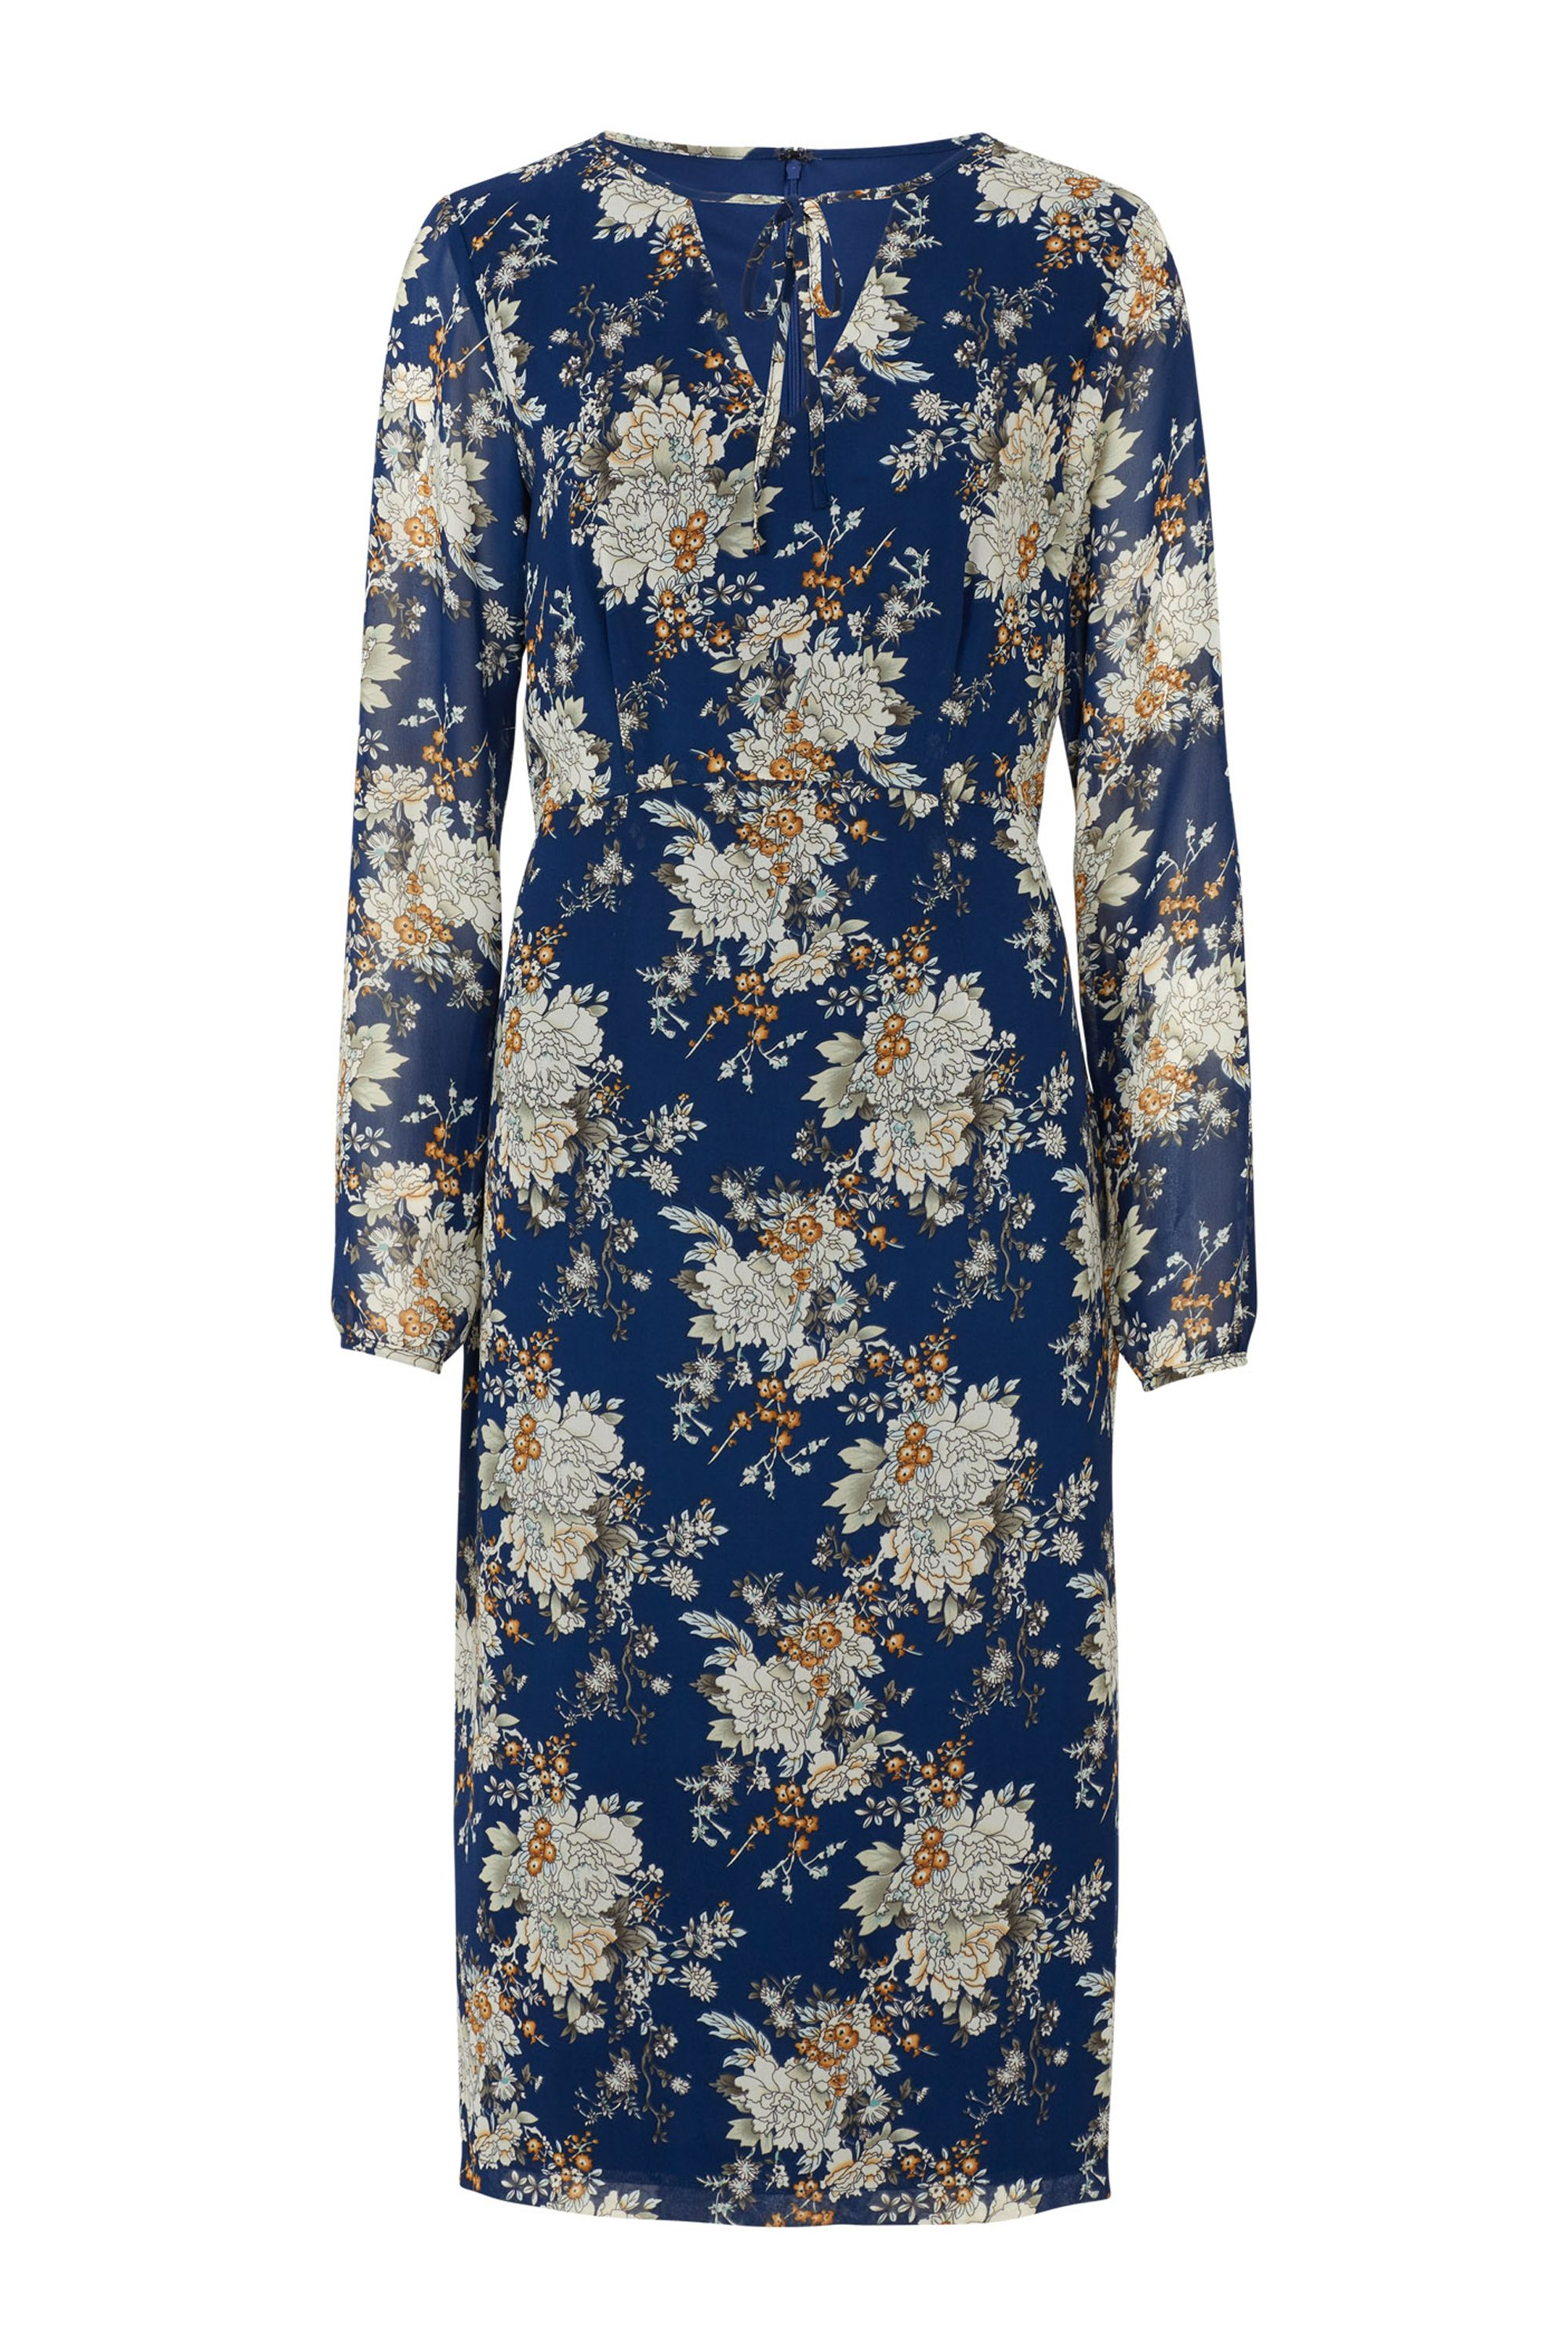 Sugarhill Boutique Noor Floral Midi Dress, Multi-Coloured